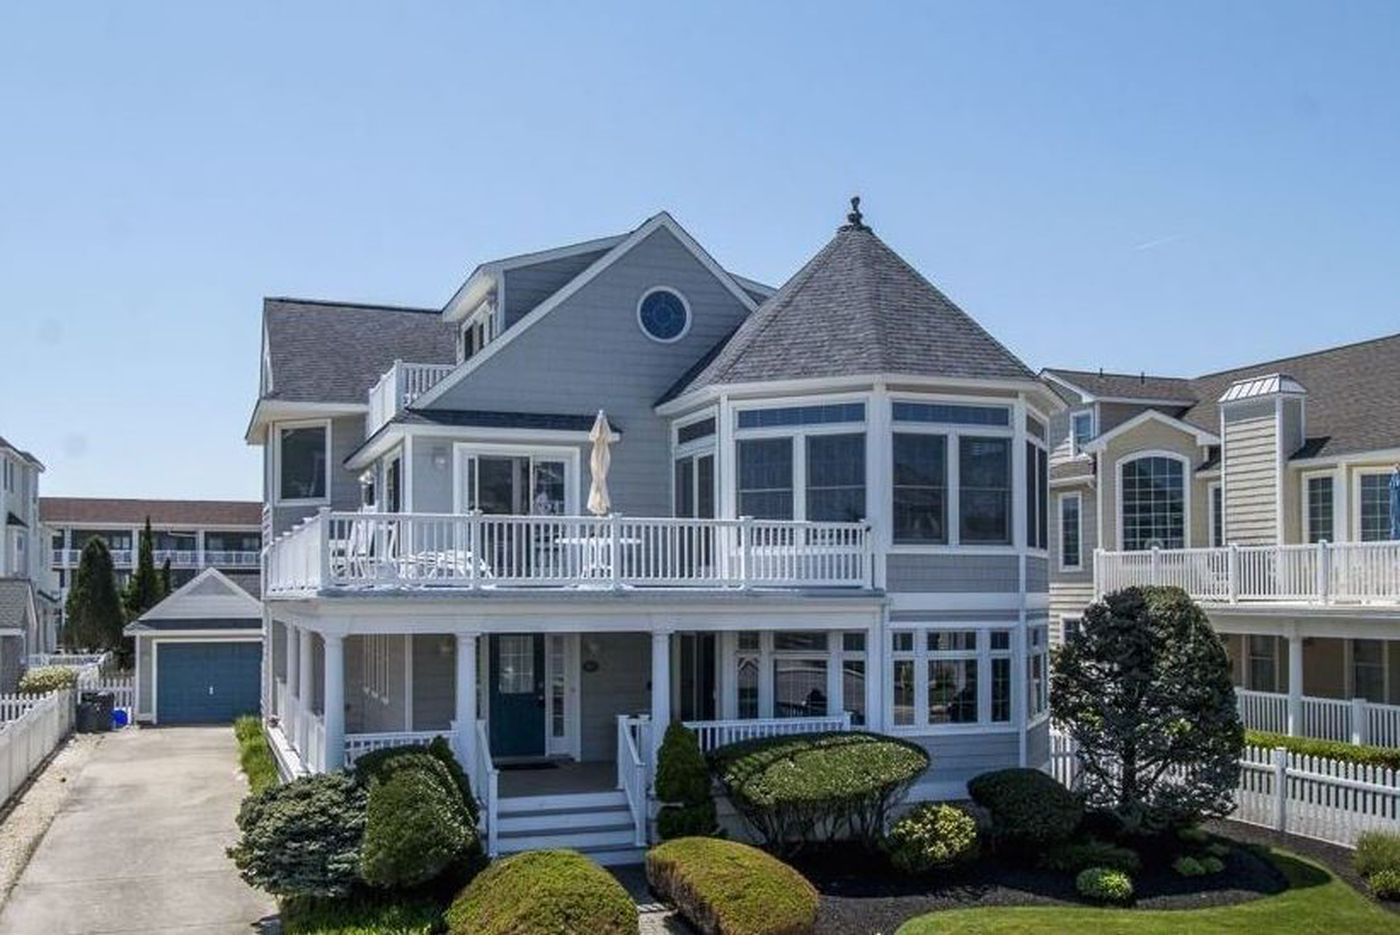 It's Shore time: Here are three Avalon stunners on the market